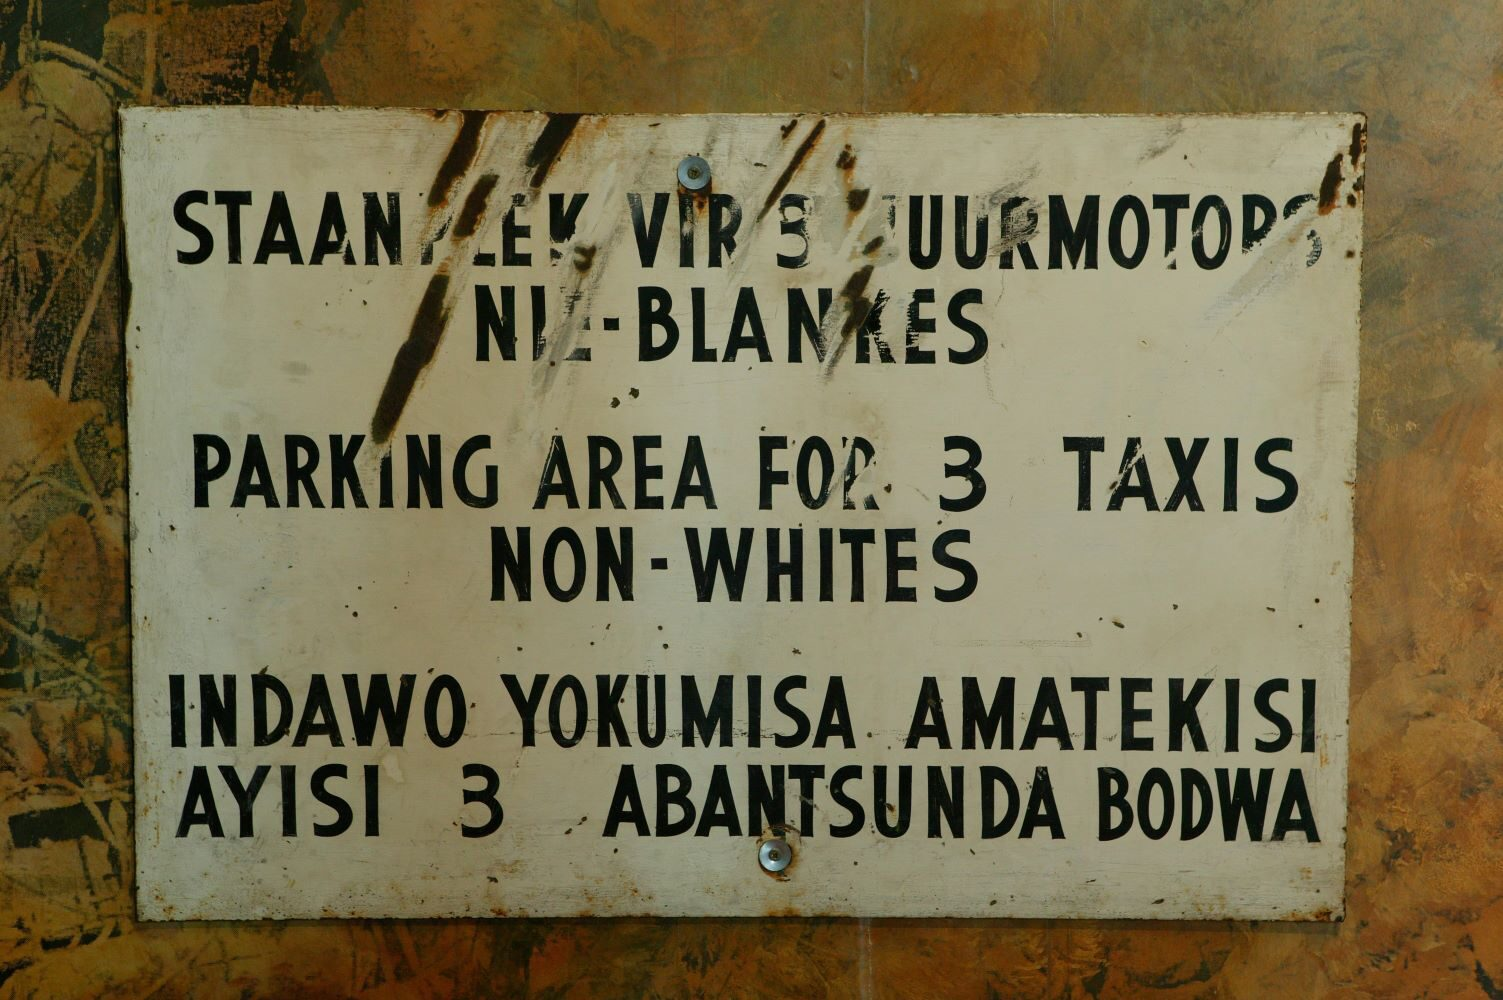 Even parking areas were used in accordance with racial segregation during apartheid in South Africa